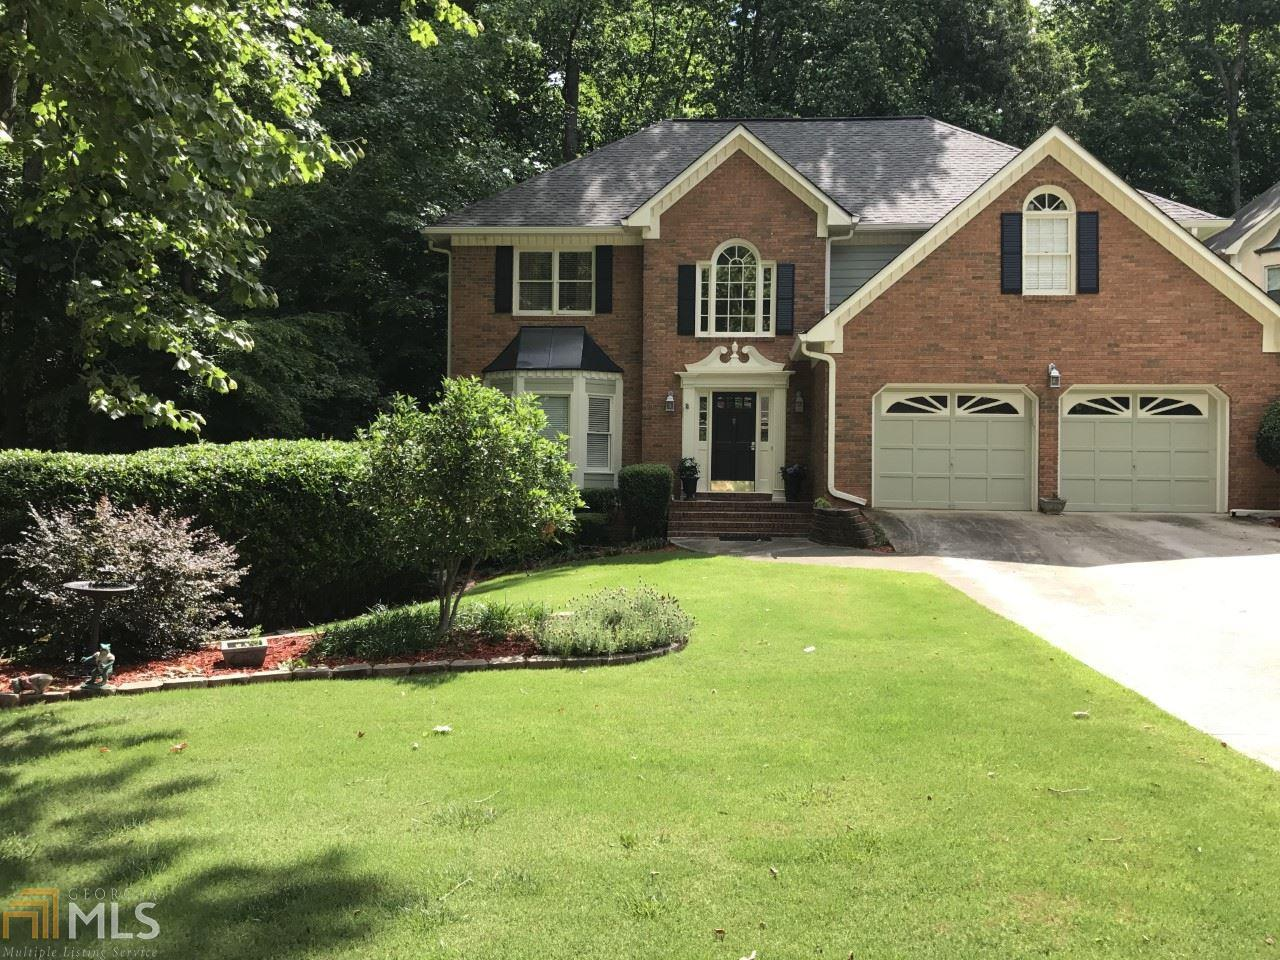 4372 mikandy dr nw kennesaw ga mls 8195571 better